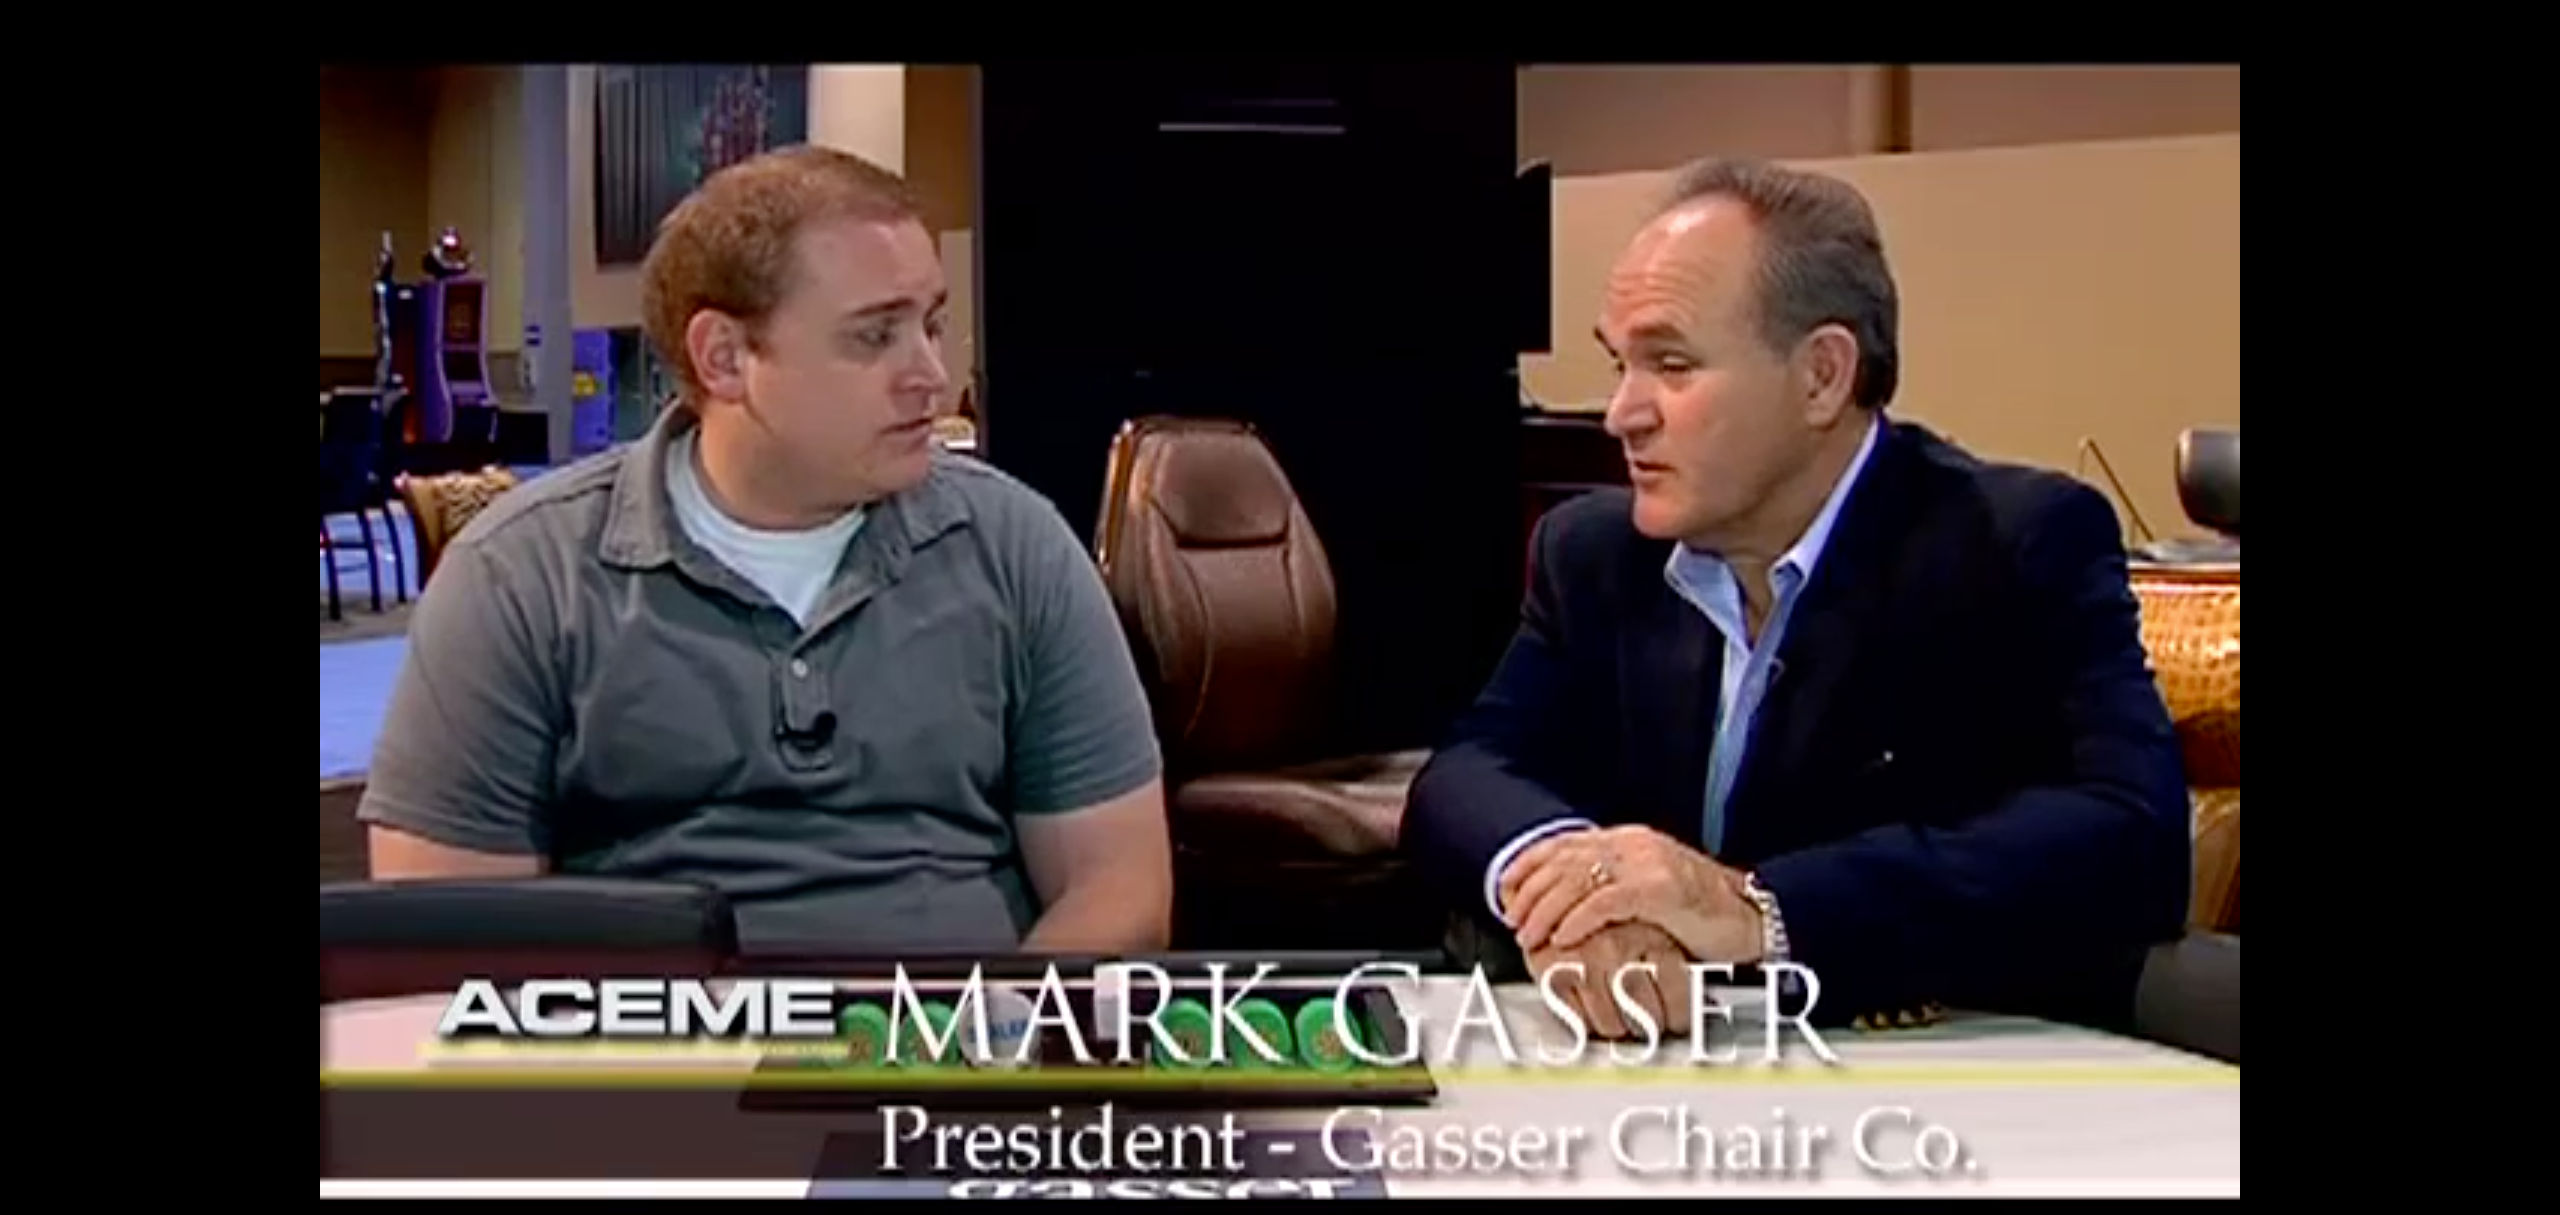 Gasser Chair Company at G2E 2012